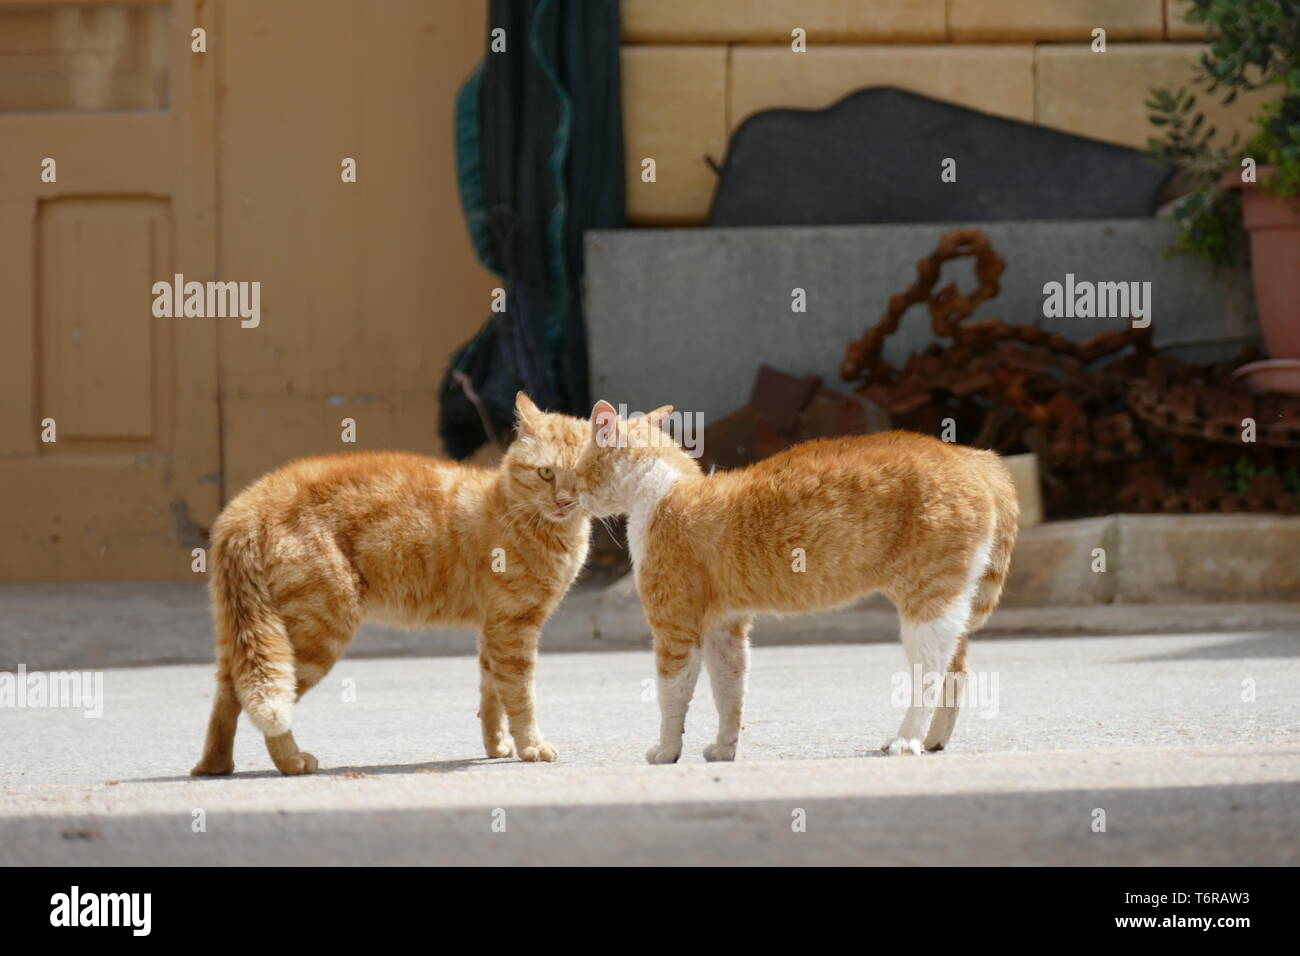 Two male cats face-off in a fight on the Mediterranean island of Gozo. Picture by Adam Alexander - Stock Image